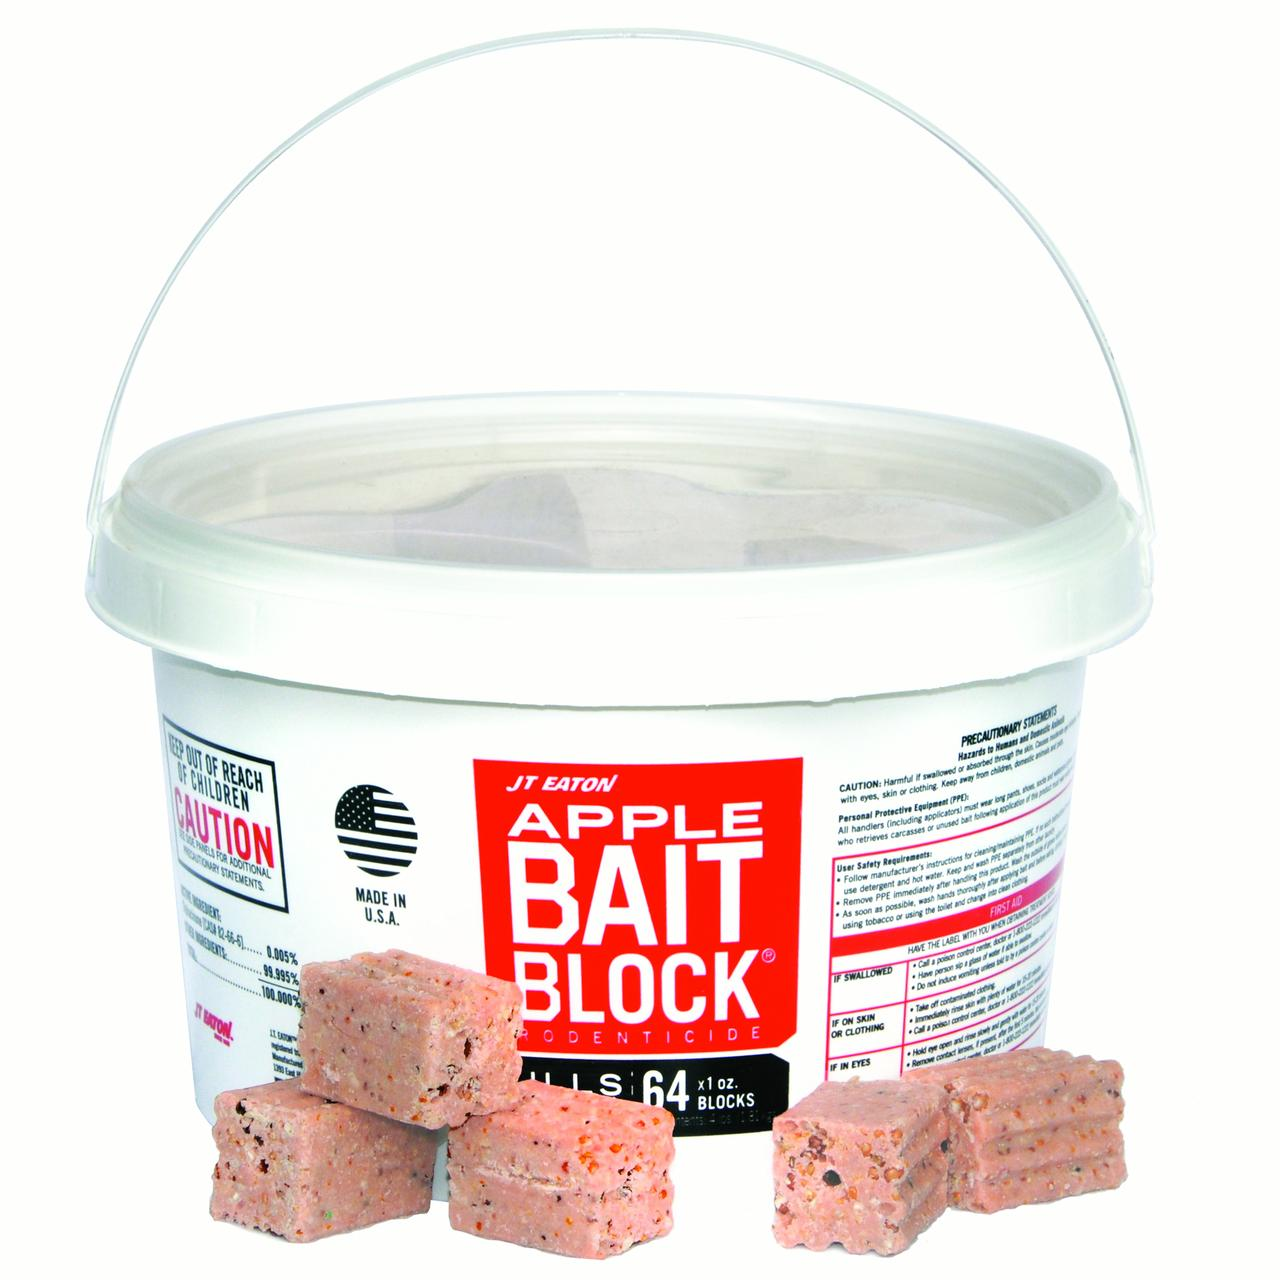 JT Eaton 704-AP Block Rodenticide Anticoagulant Bait for Mice and Rats, Apple Flavor, Pail of 64